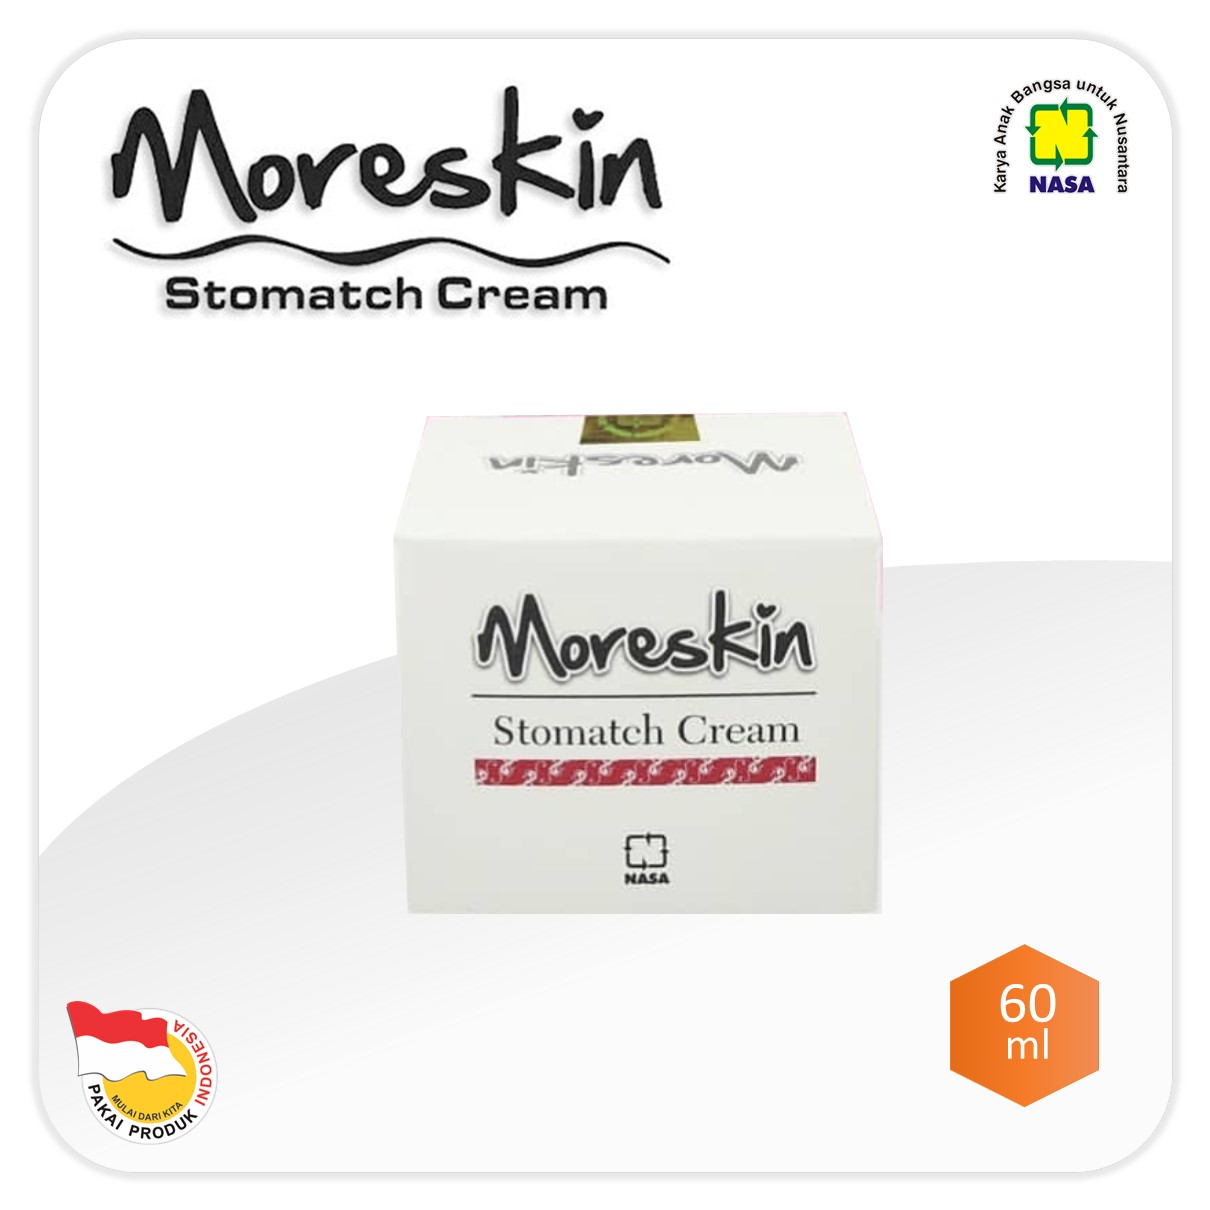 Moreskin Stomatch Cream